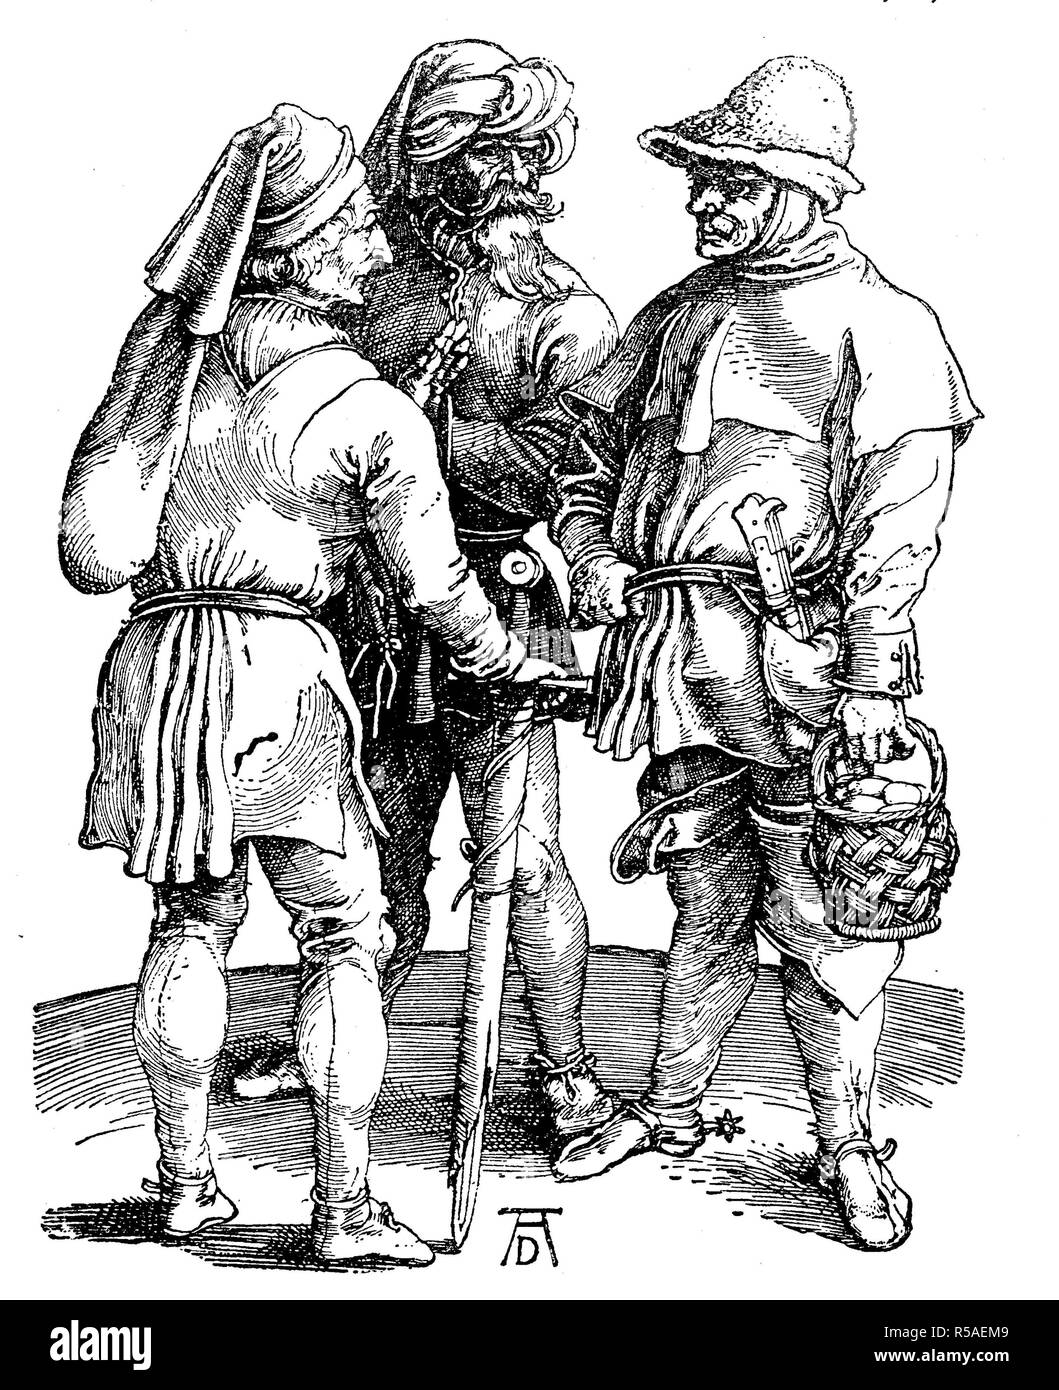 Illustration of three peasants from the beginning of the 16th century, drawn and engraved by Albrecht Duerer, woodcut, Germany - Stock Image